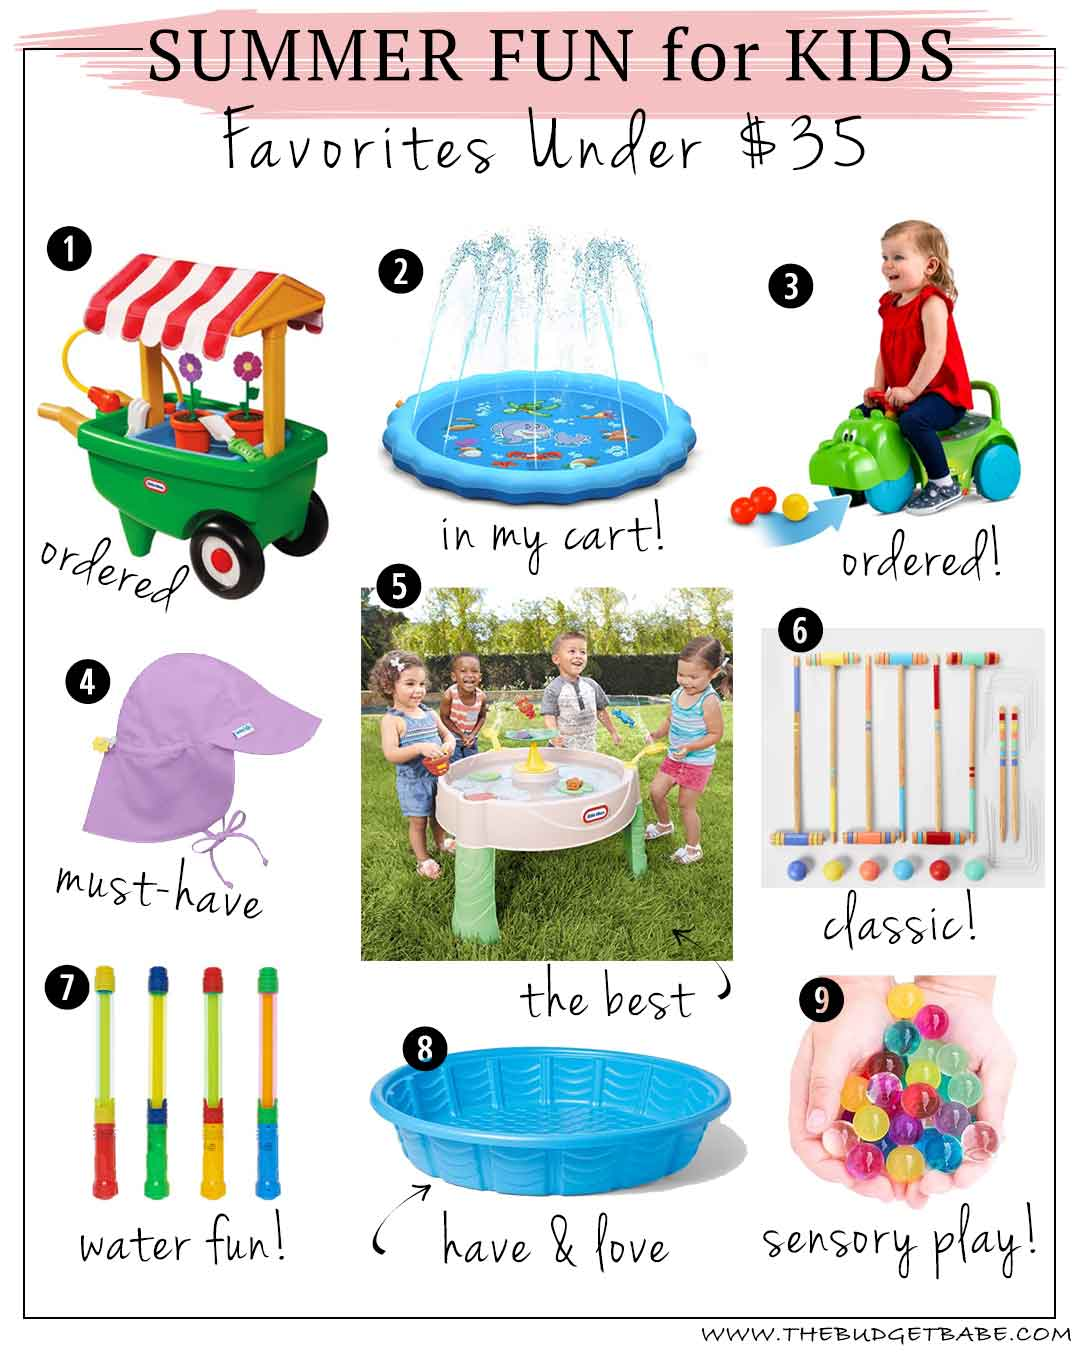 Best Summer Toys for Kids Under $35! Summer fun doesn't have to cost a lot